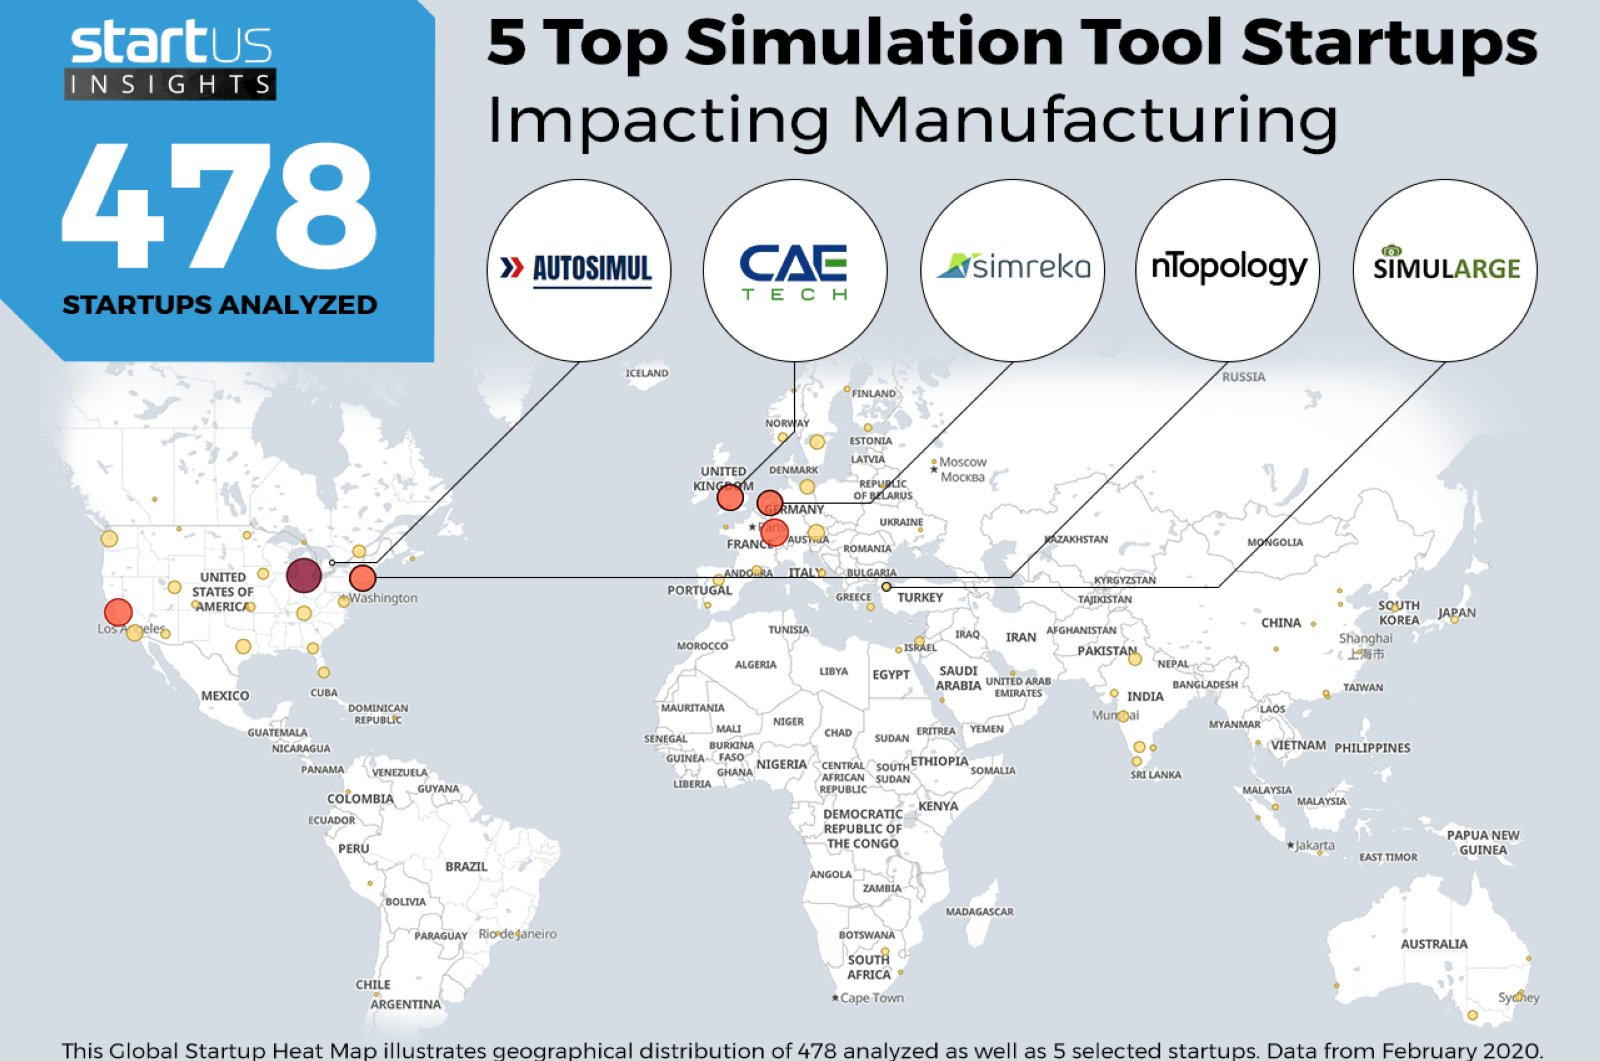 Simularge is among the top five best simulation enterprises, along with American, Canadian, British and German companies. (Courtesy by Startus Insights)